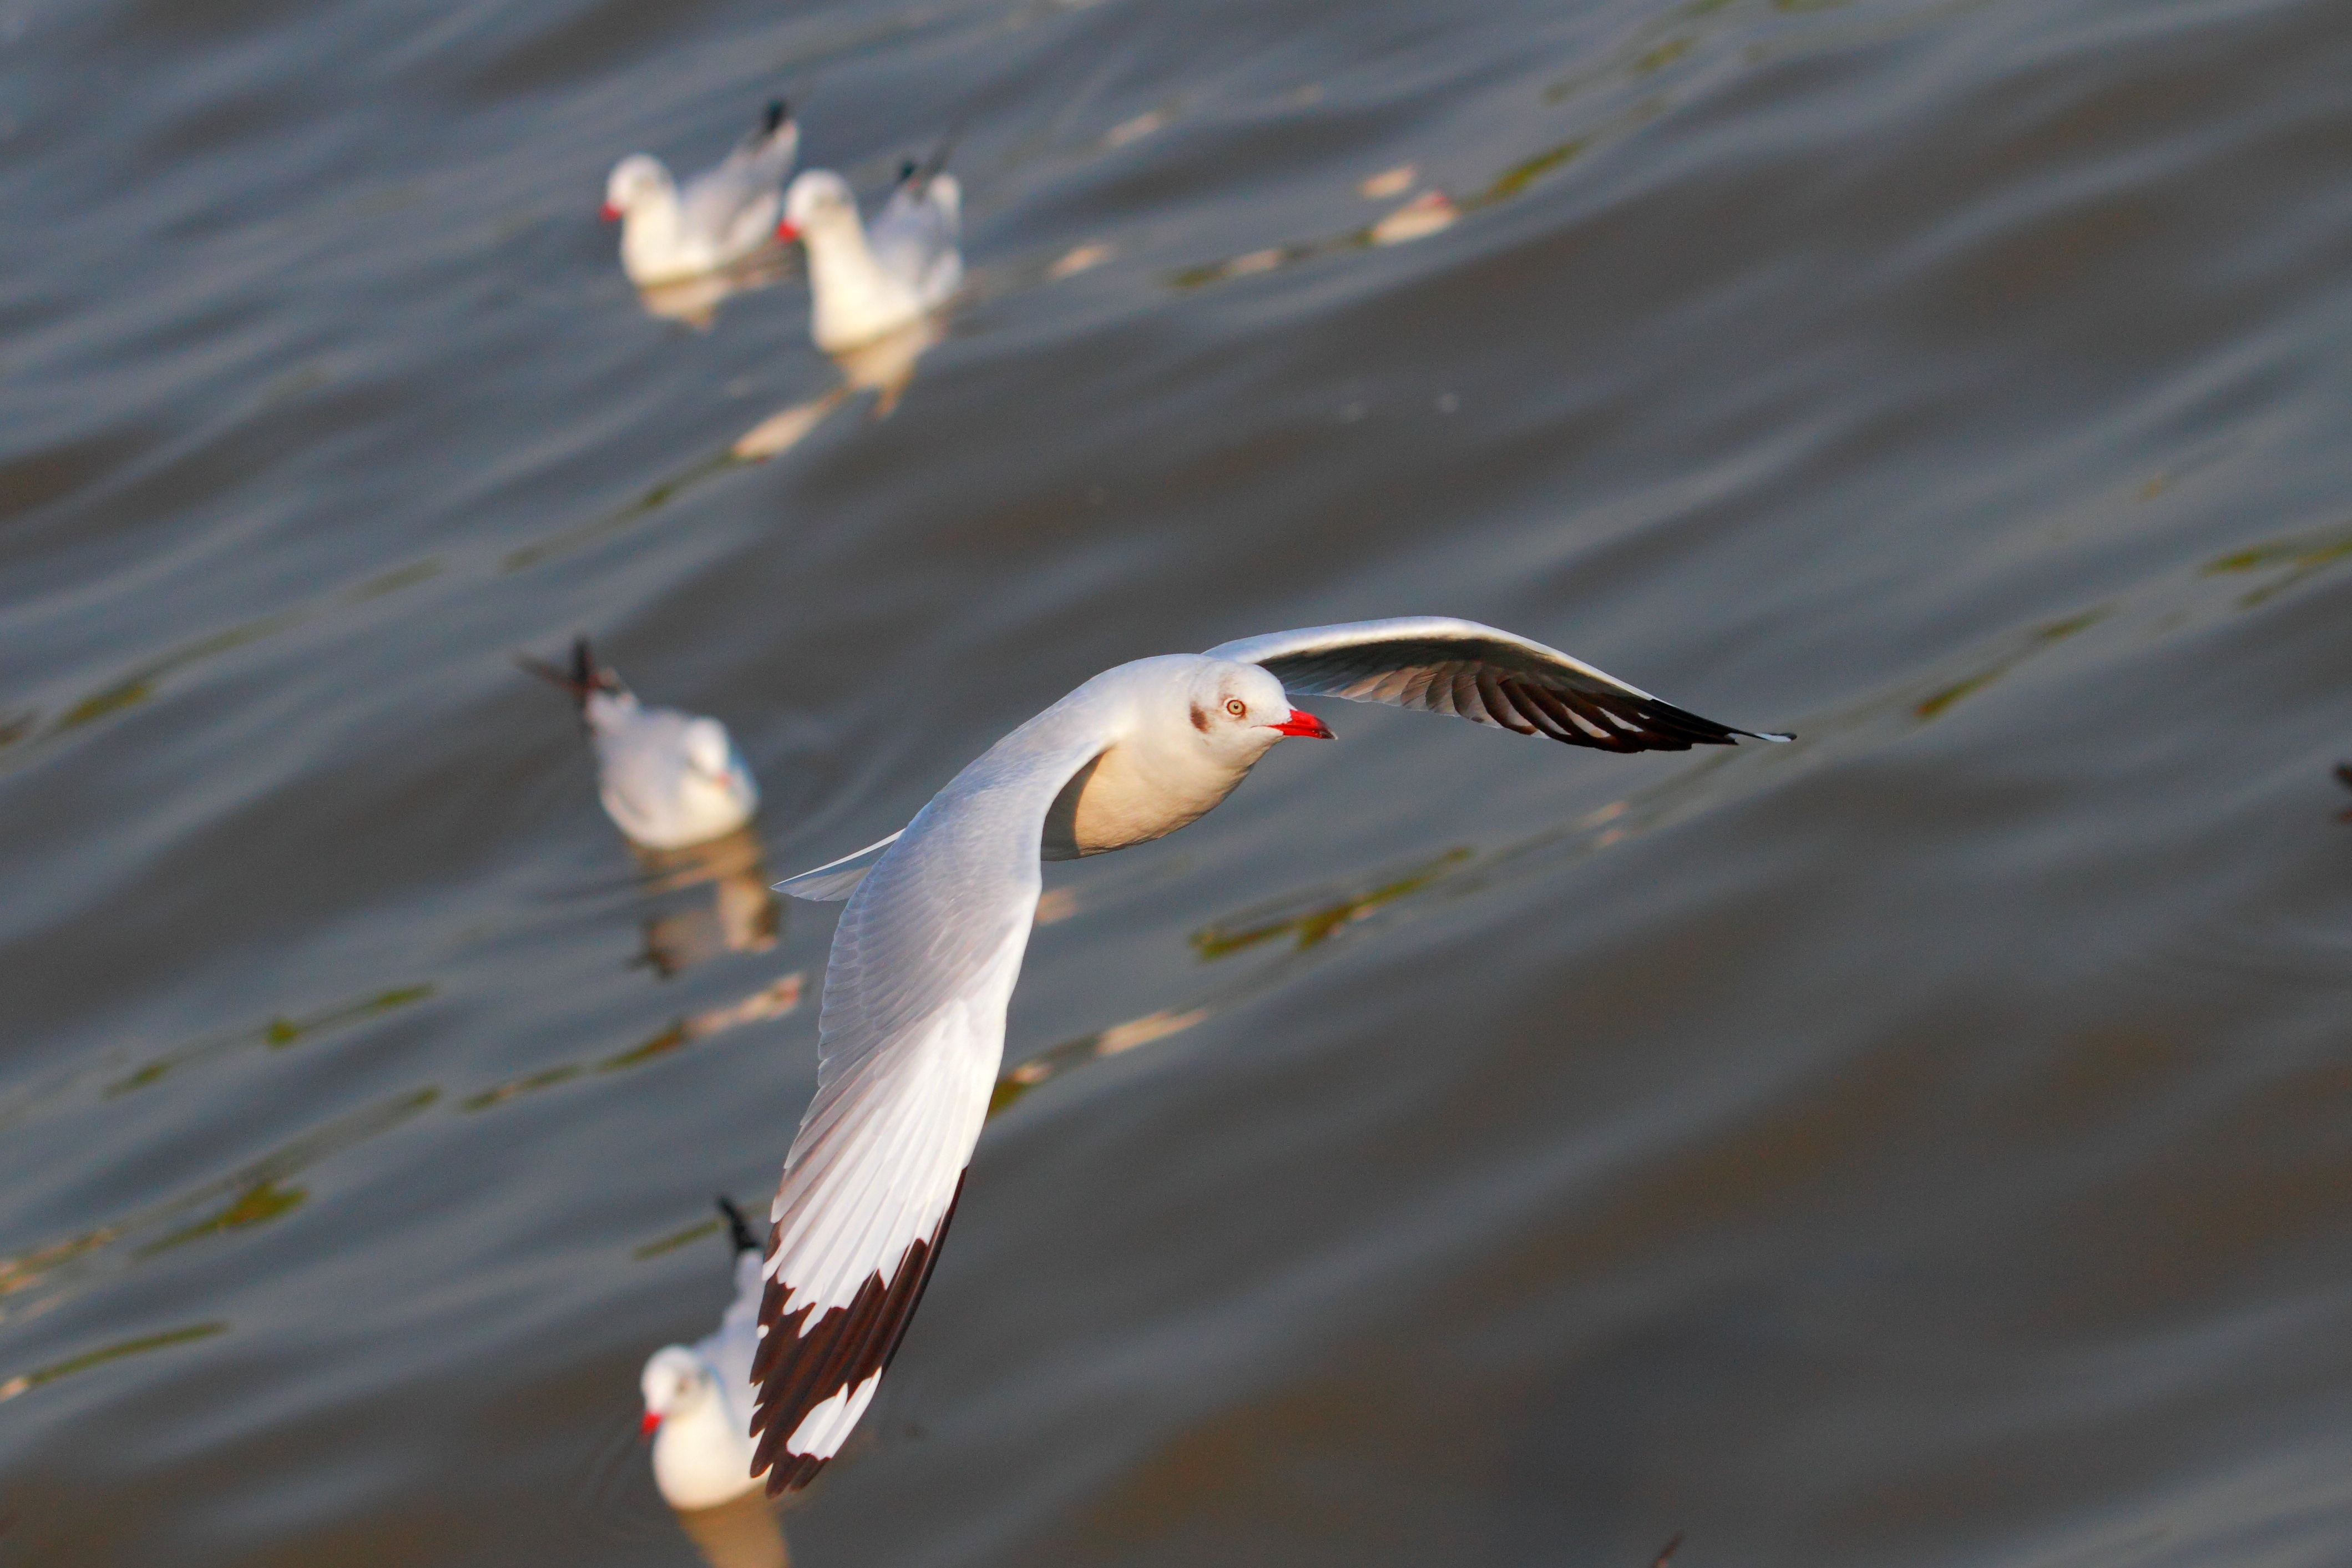 154373 download wallpaper Animals, Flight, Sweep, Wave, Birds, Seagulls screensavers and pictures for free